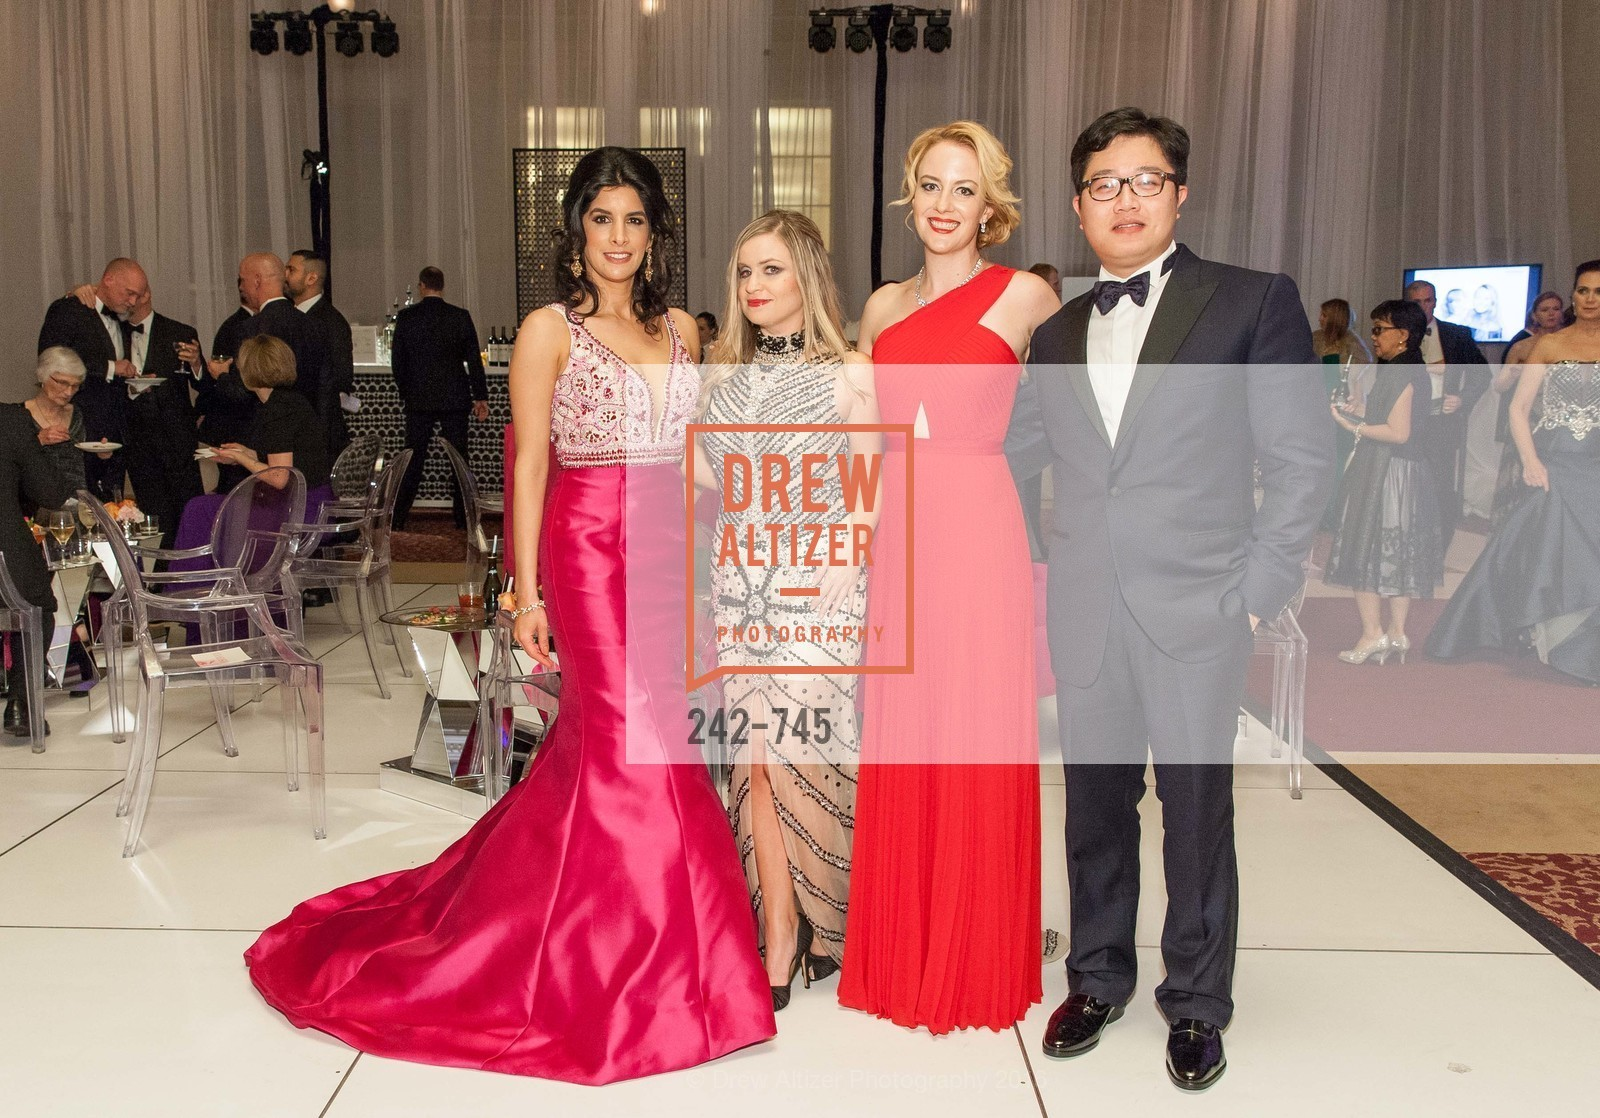 Veronica Rivas Tramontozzi, Julie Hall, Stephanie Sparling, Christopher Tse, San Francisco Ballet 2016 Opening Night Gala Part 2, San Francisco City Hall, January 21st, 2016,Drew Altizer, Drew Altizer Photography, full-service agency, private events, San Francisco photographer, photographer california